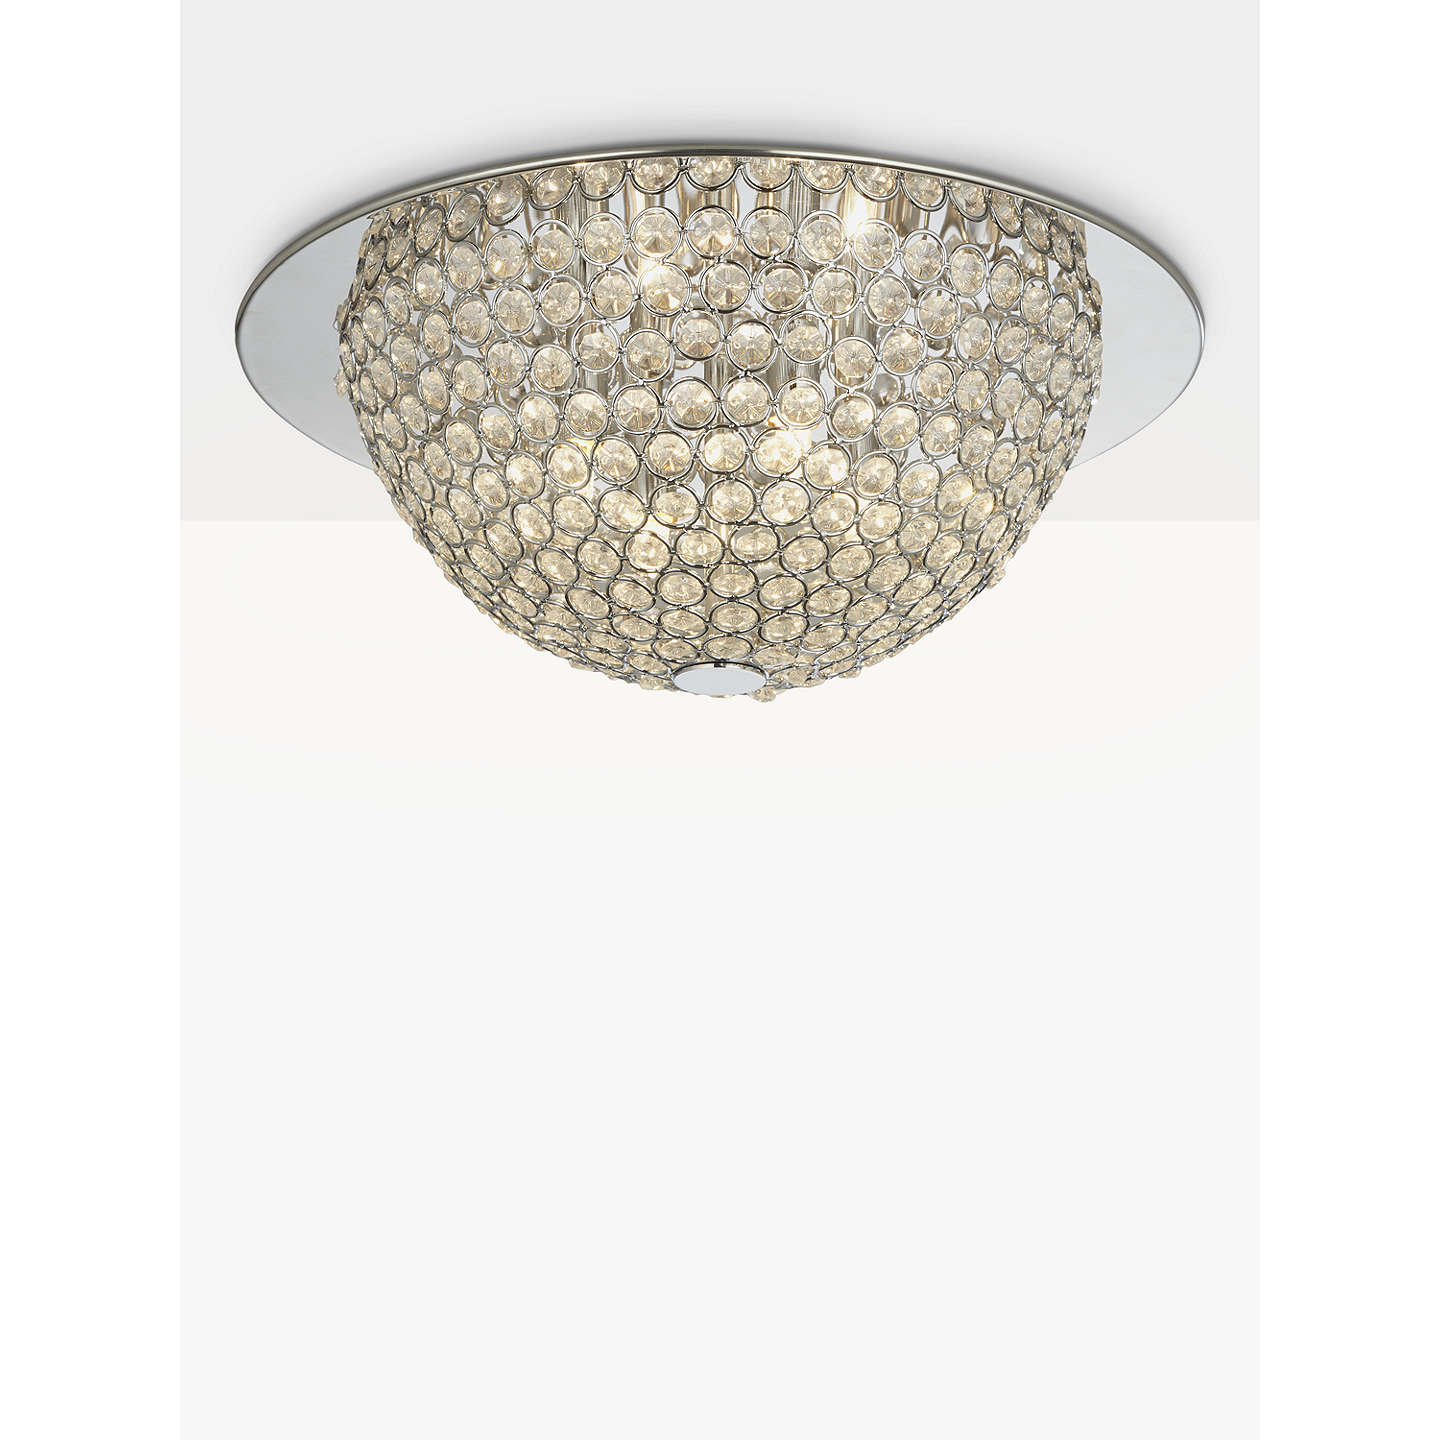 John lewis moon semi flush ceiling light silverclear at john lewis buyjohn lewis moon semi flush ceiling light silverclear online at johnlewis aloadofball